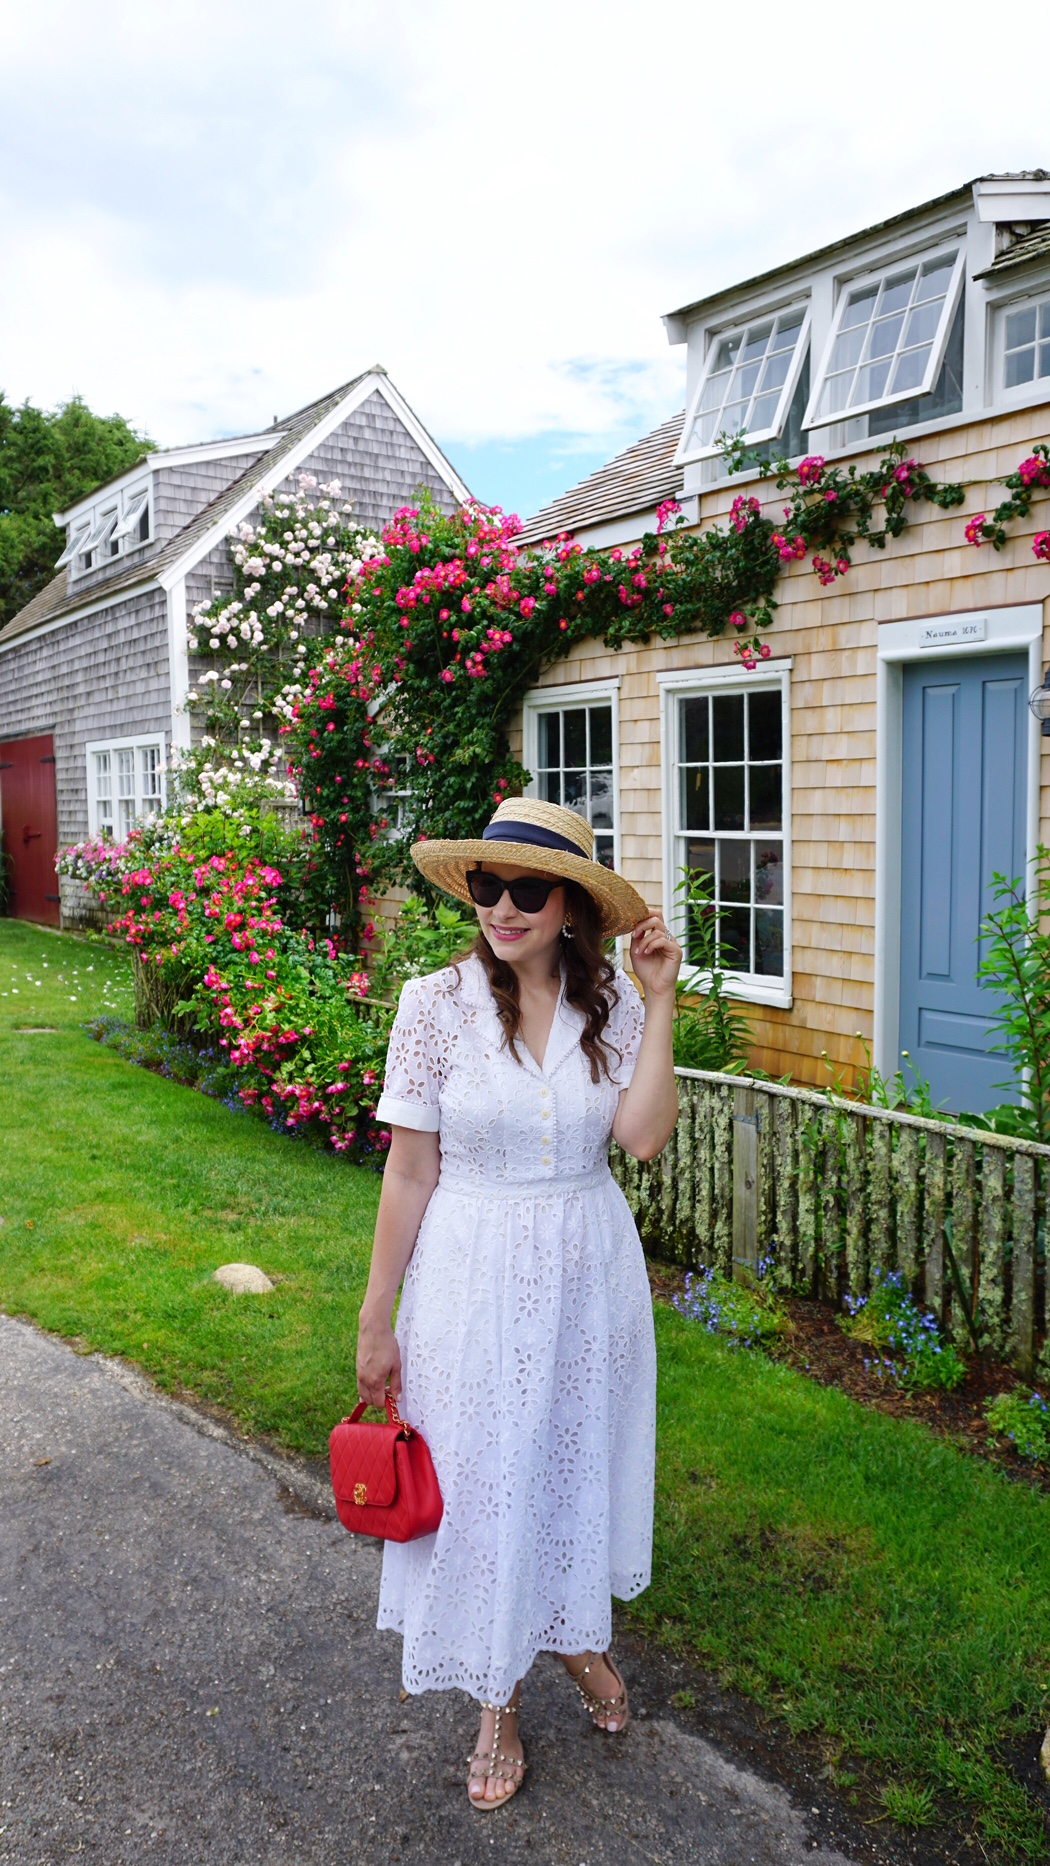 summer dresses, eyelet dress, sconset , siasconset nantucket, the-alyst.com